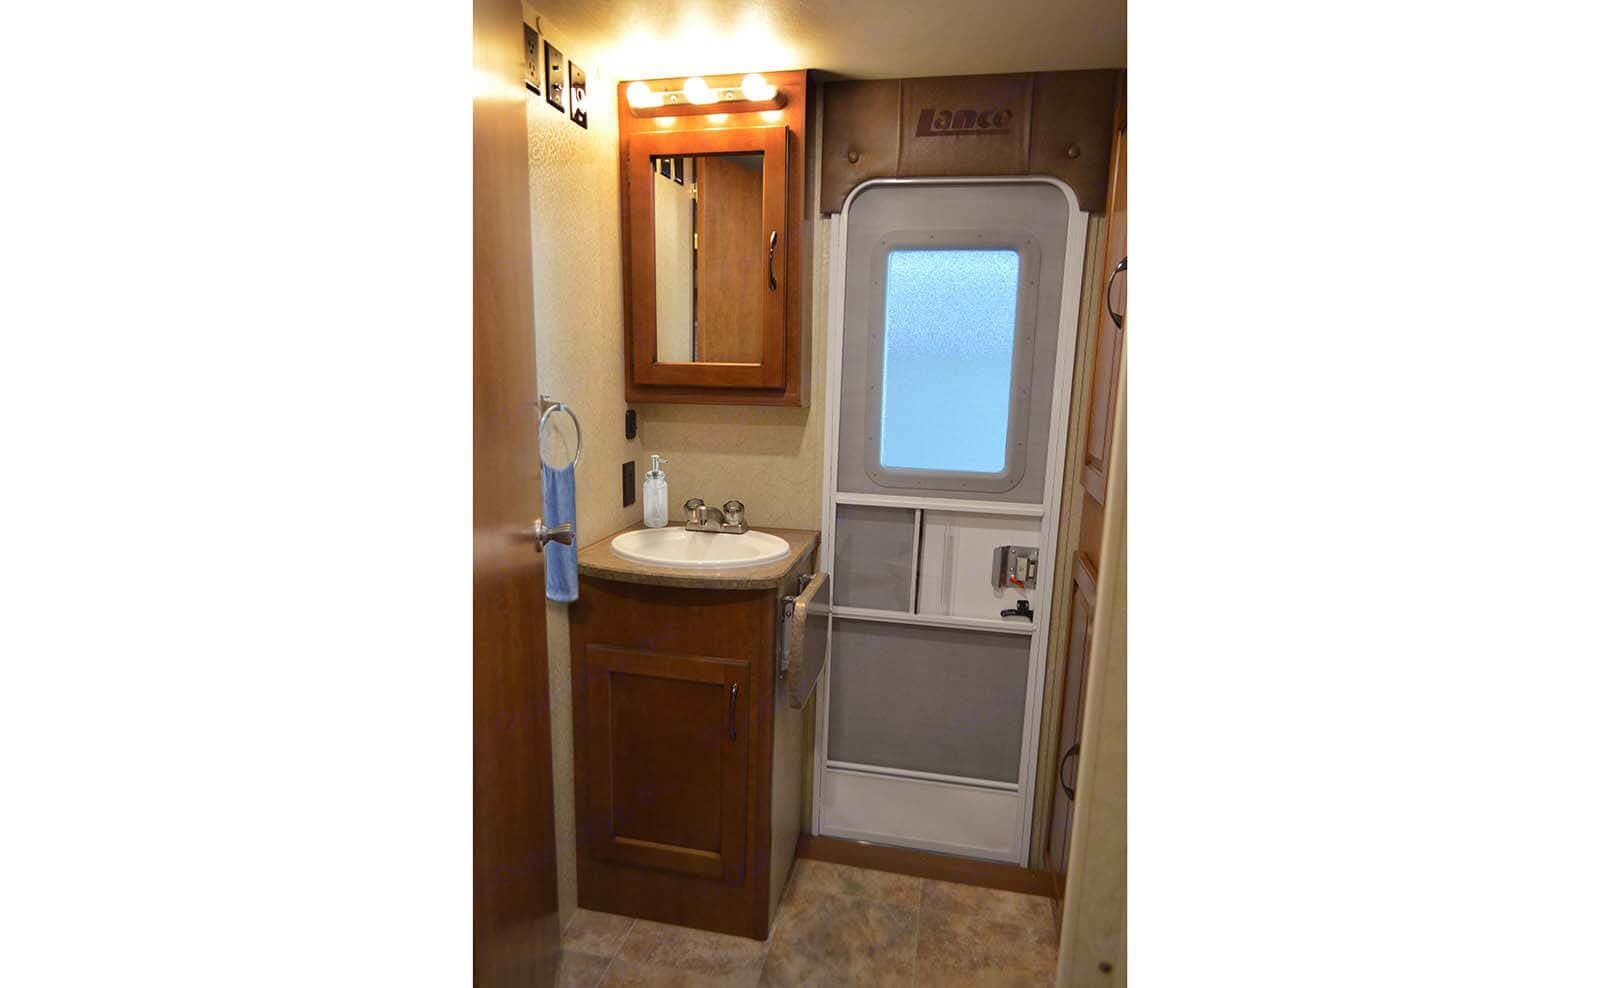 Bathroom sink separated from the bathroom by a door. Lance 2185 2015